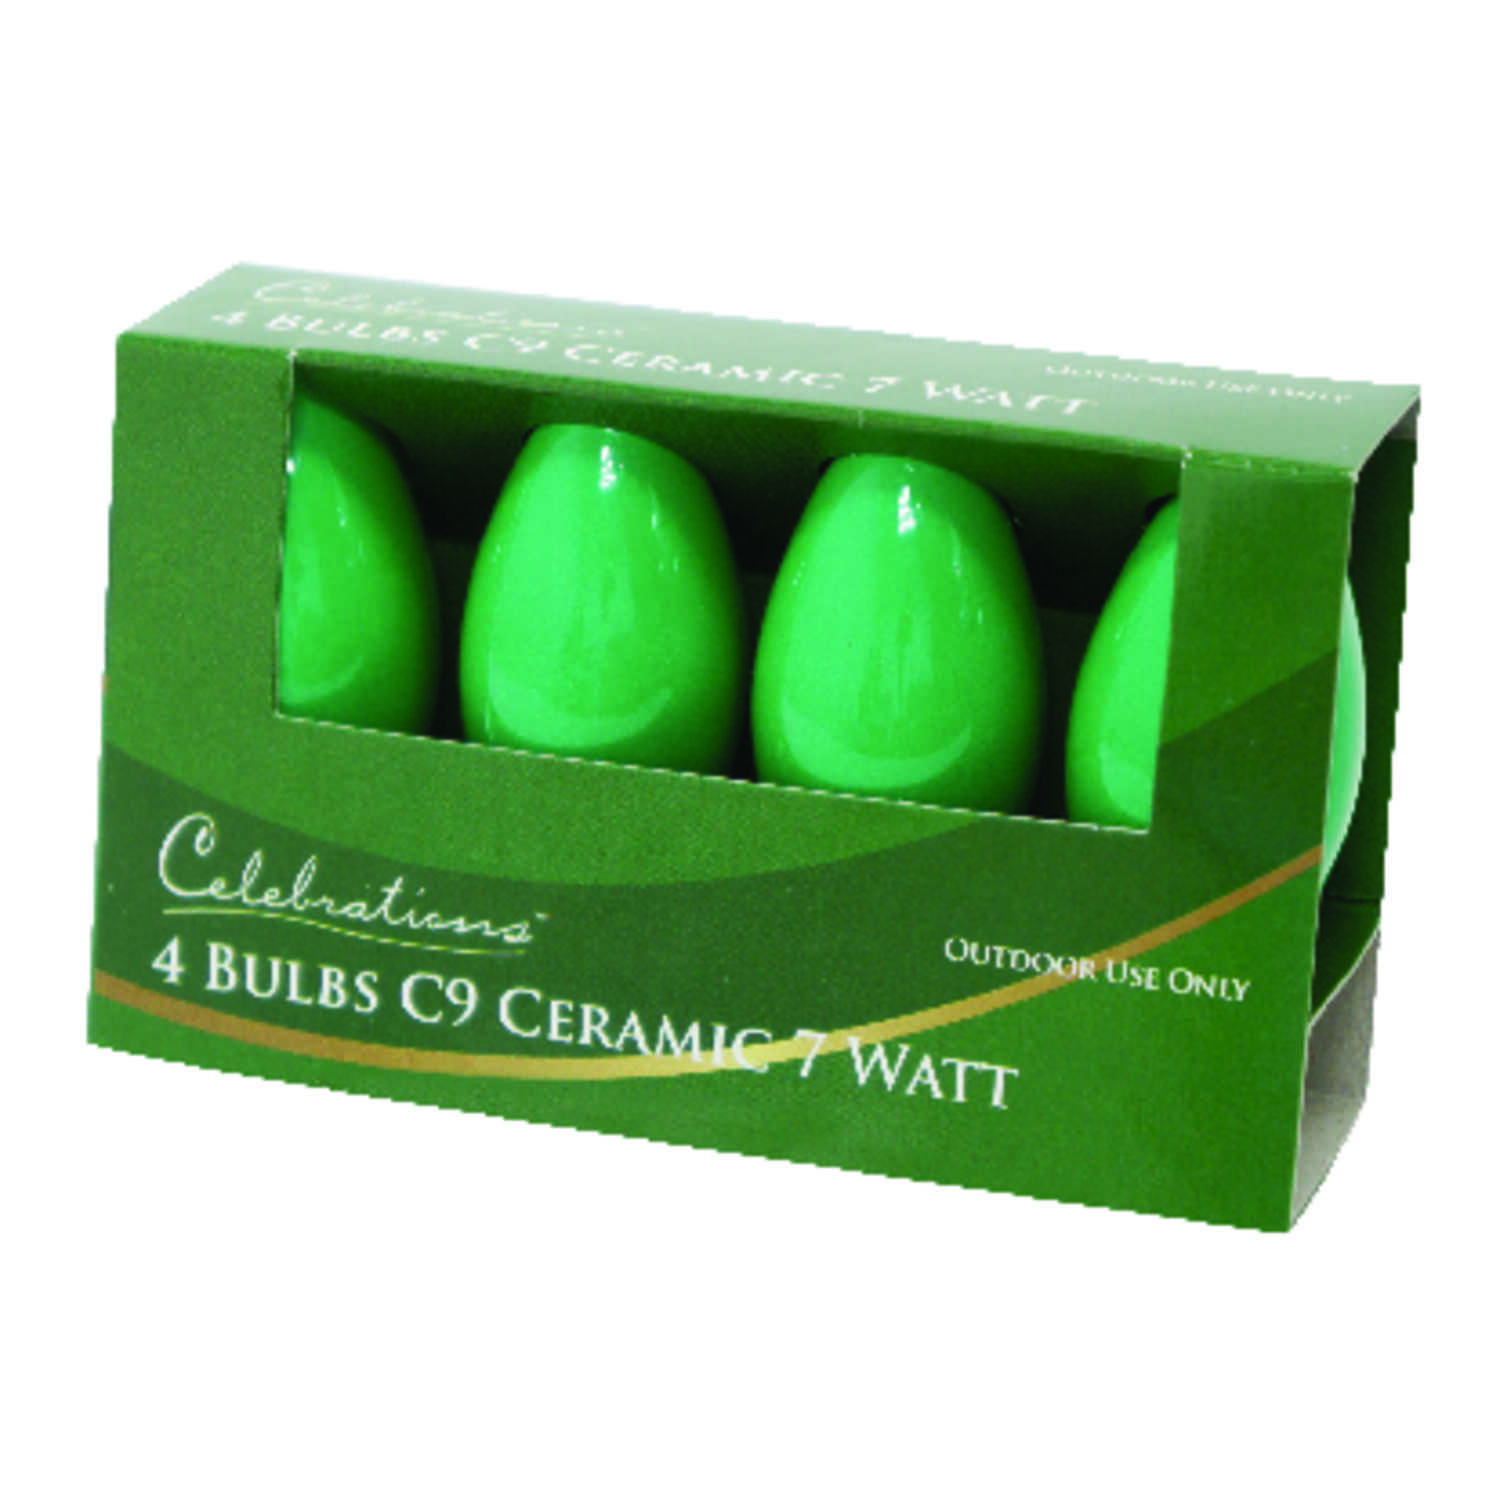 Celebrations  Incandescent  Ceramic C9  Replacement Bulb  Green  4 pk